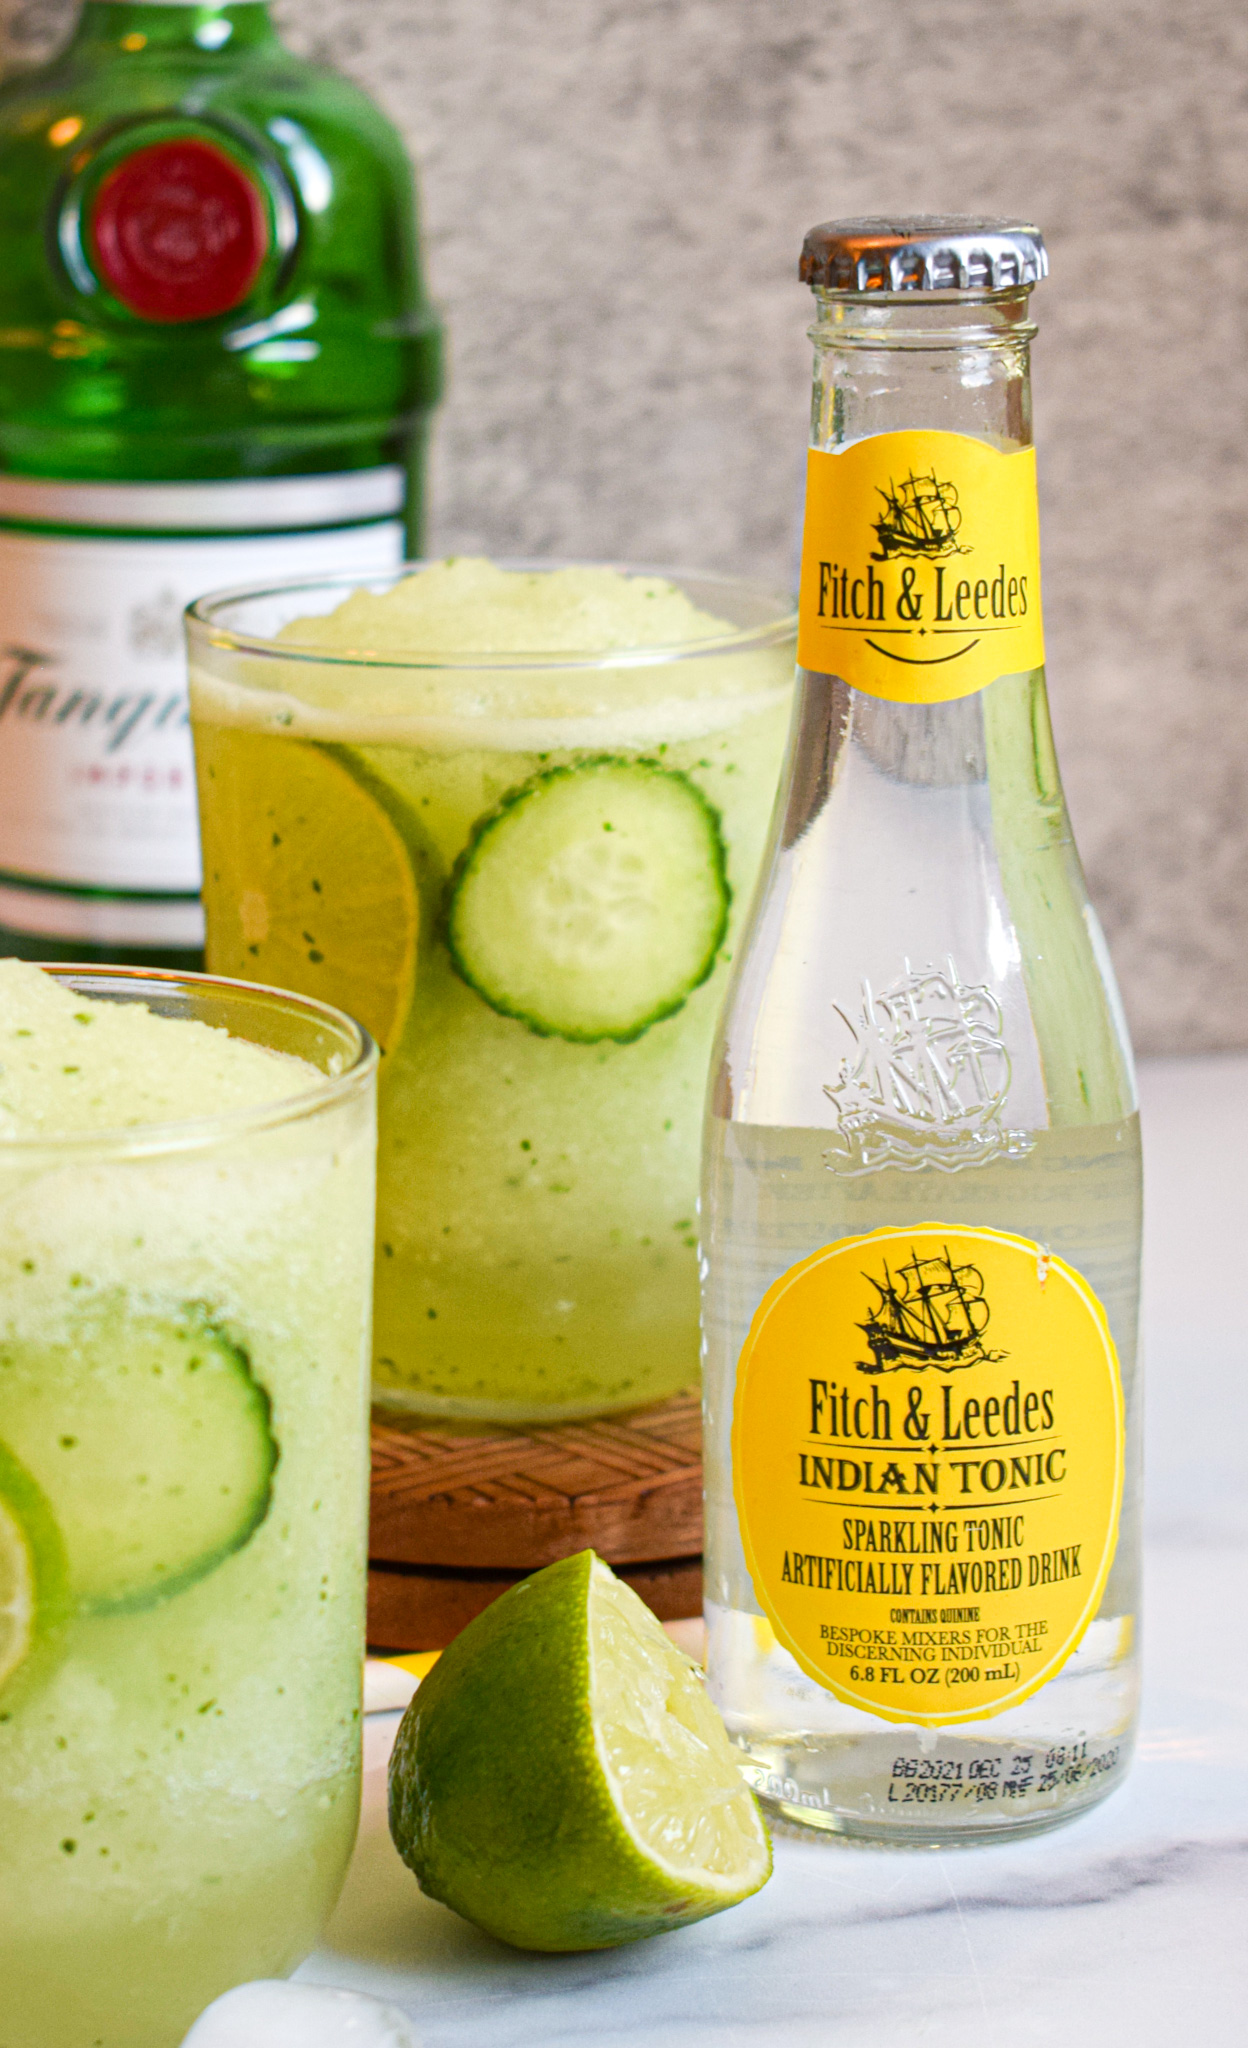 frozen gin and tonic recipe with fitch & leedes indian tonic